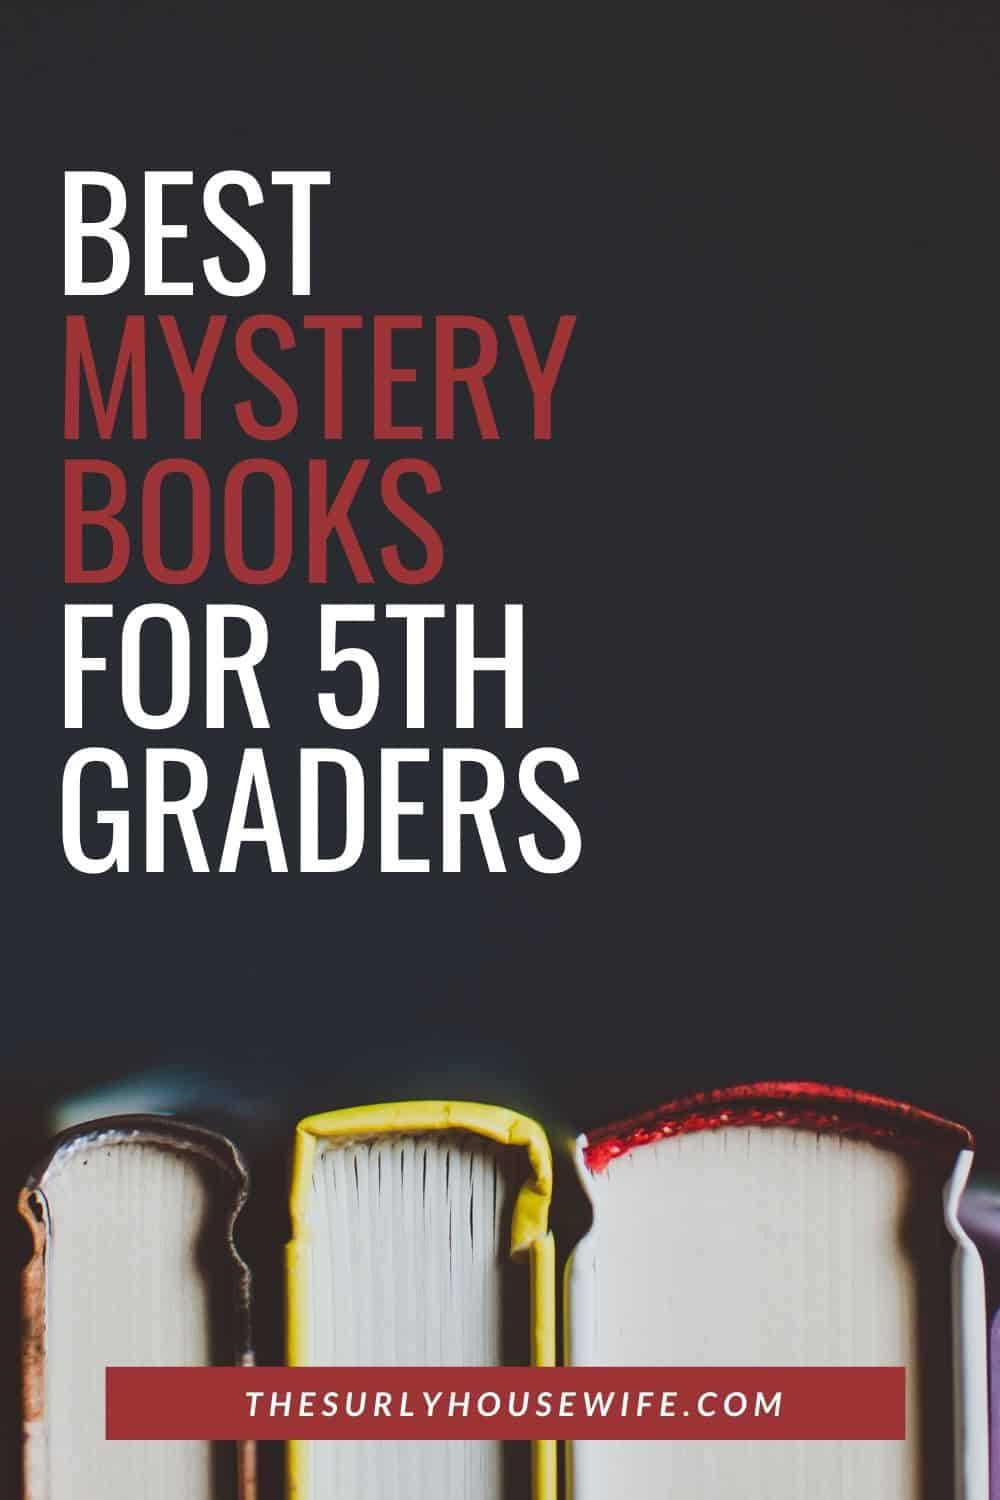 Looking for the best books for 5th graders? Don't miss this post for 10 mystery books for kids.